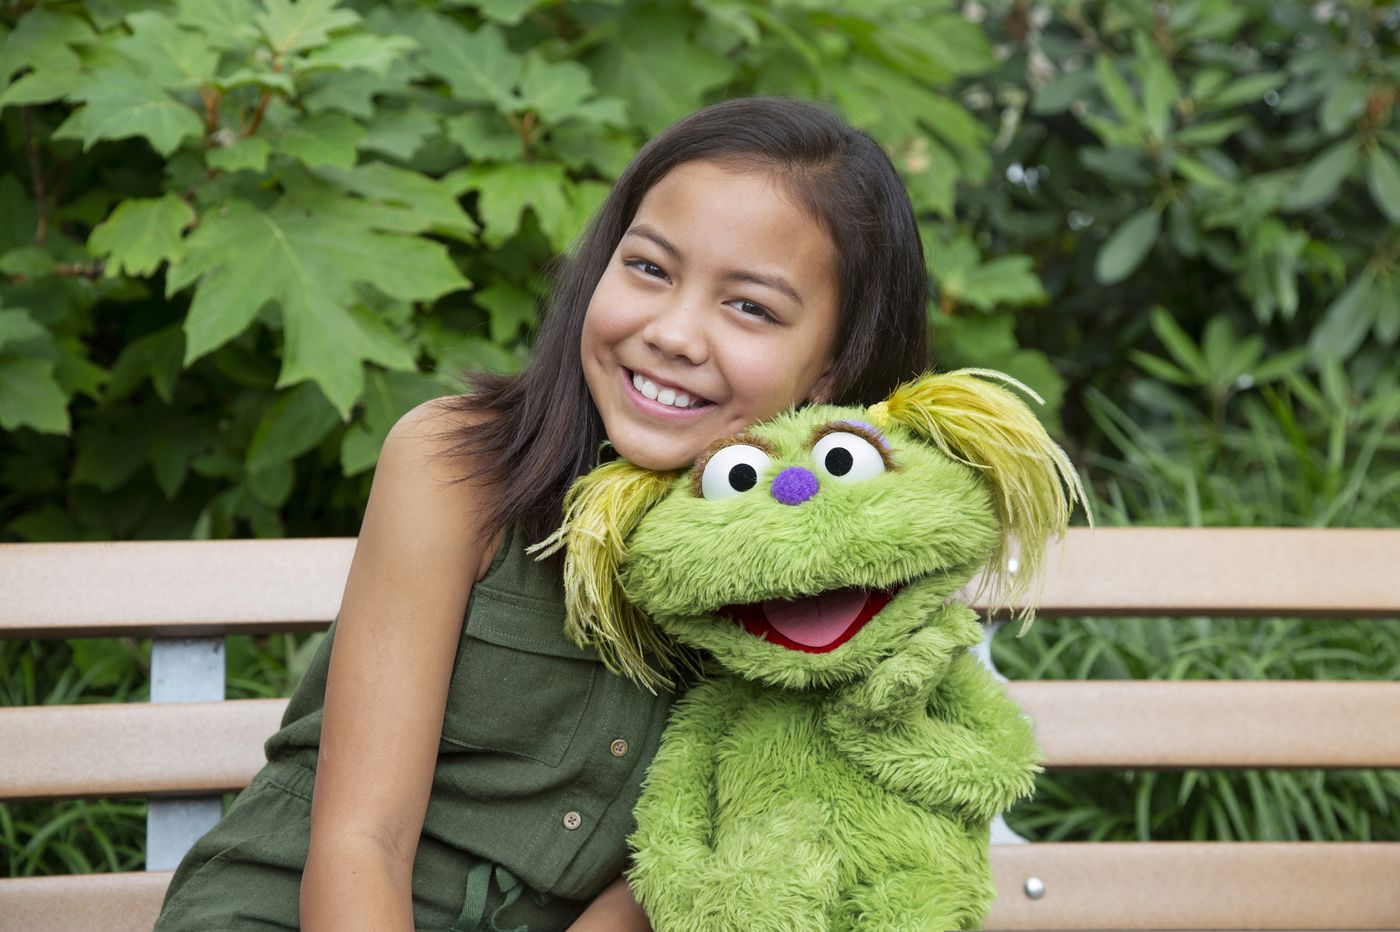 'We're not alone' — 'Sesame Street' tackles addiction crisis